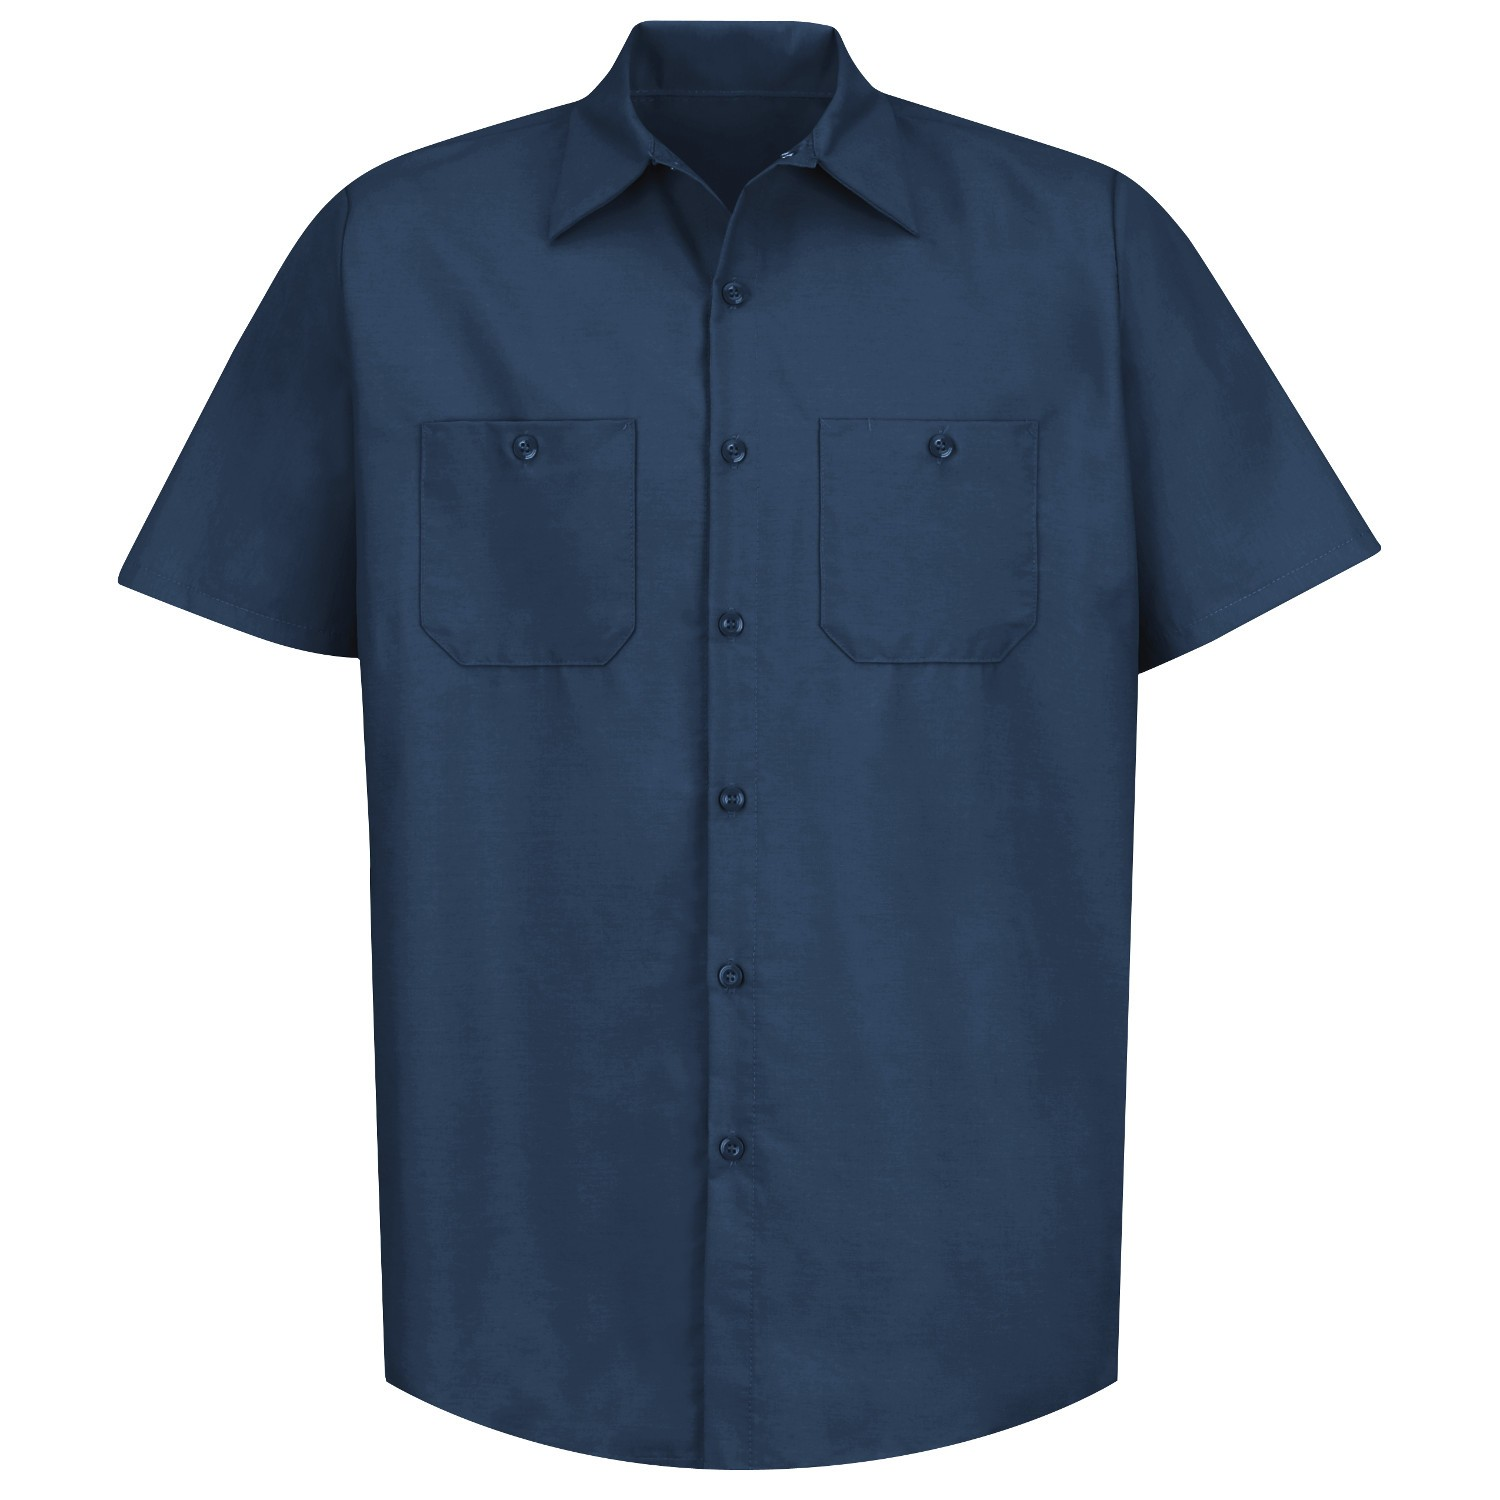 57364e92f9ea2 Red Kap SP24 Men s Industrial Work Shirt - Short Sleeve - Navy ...